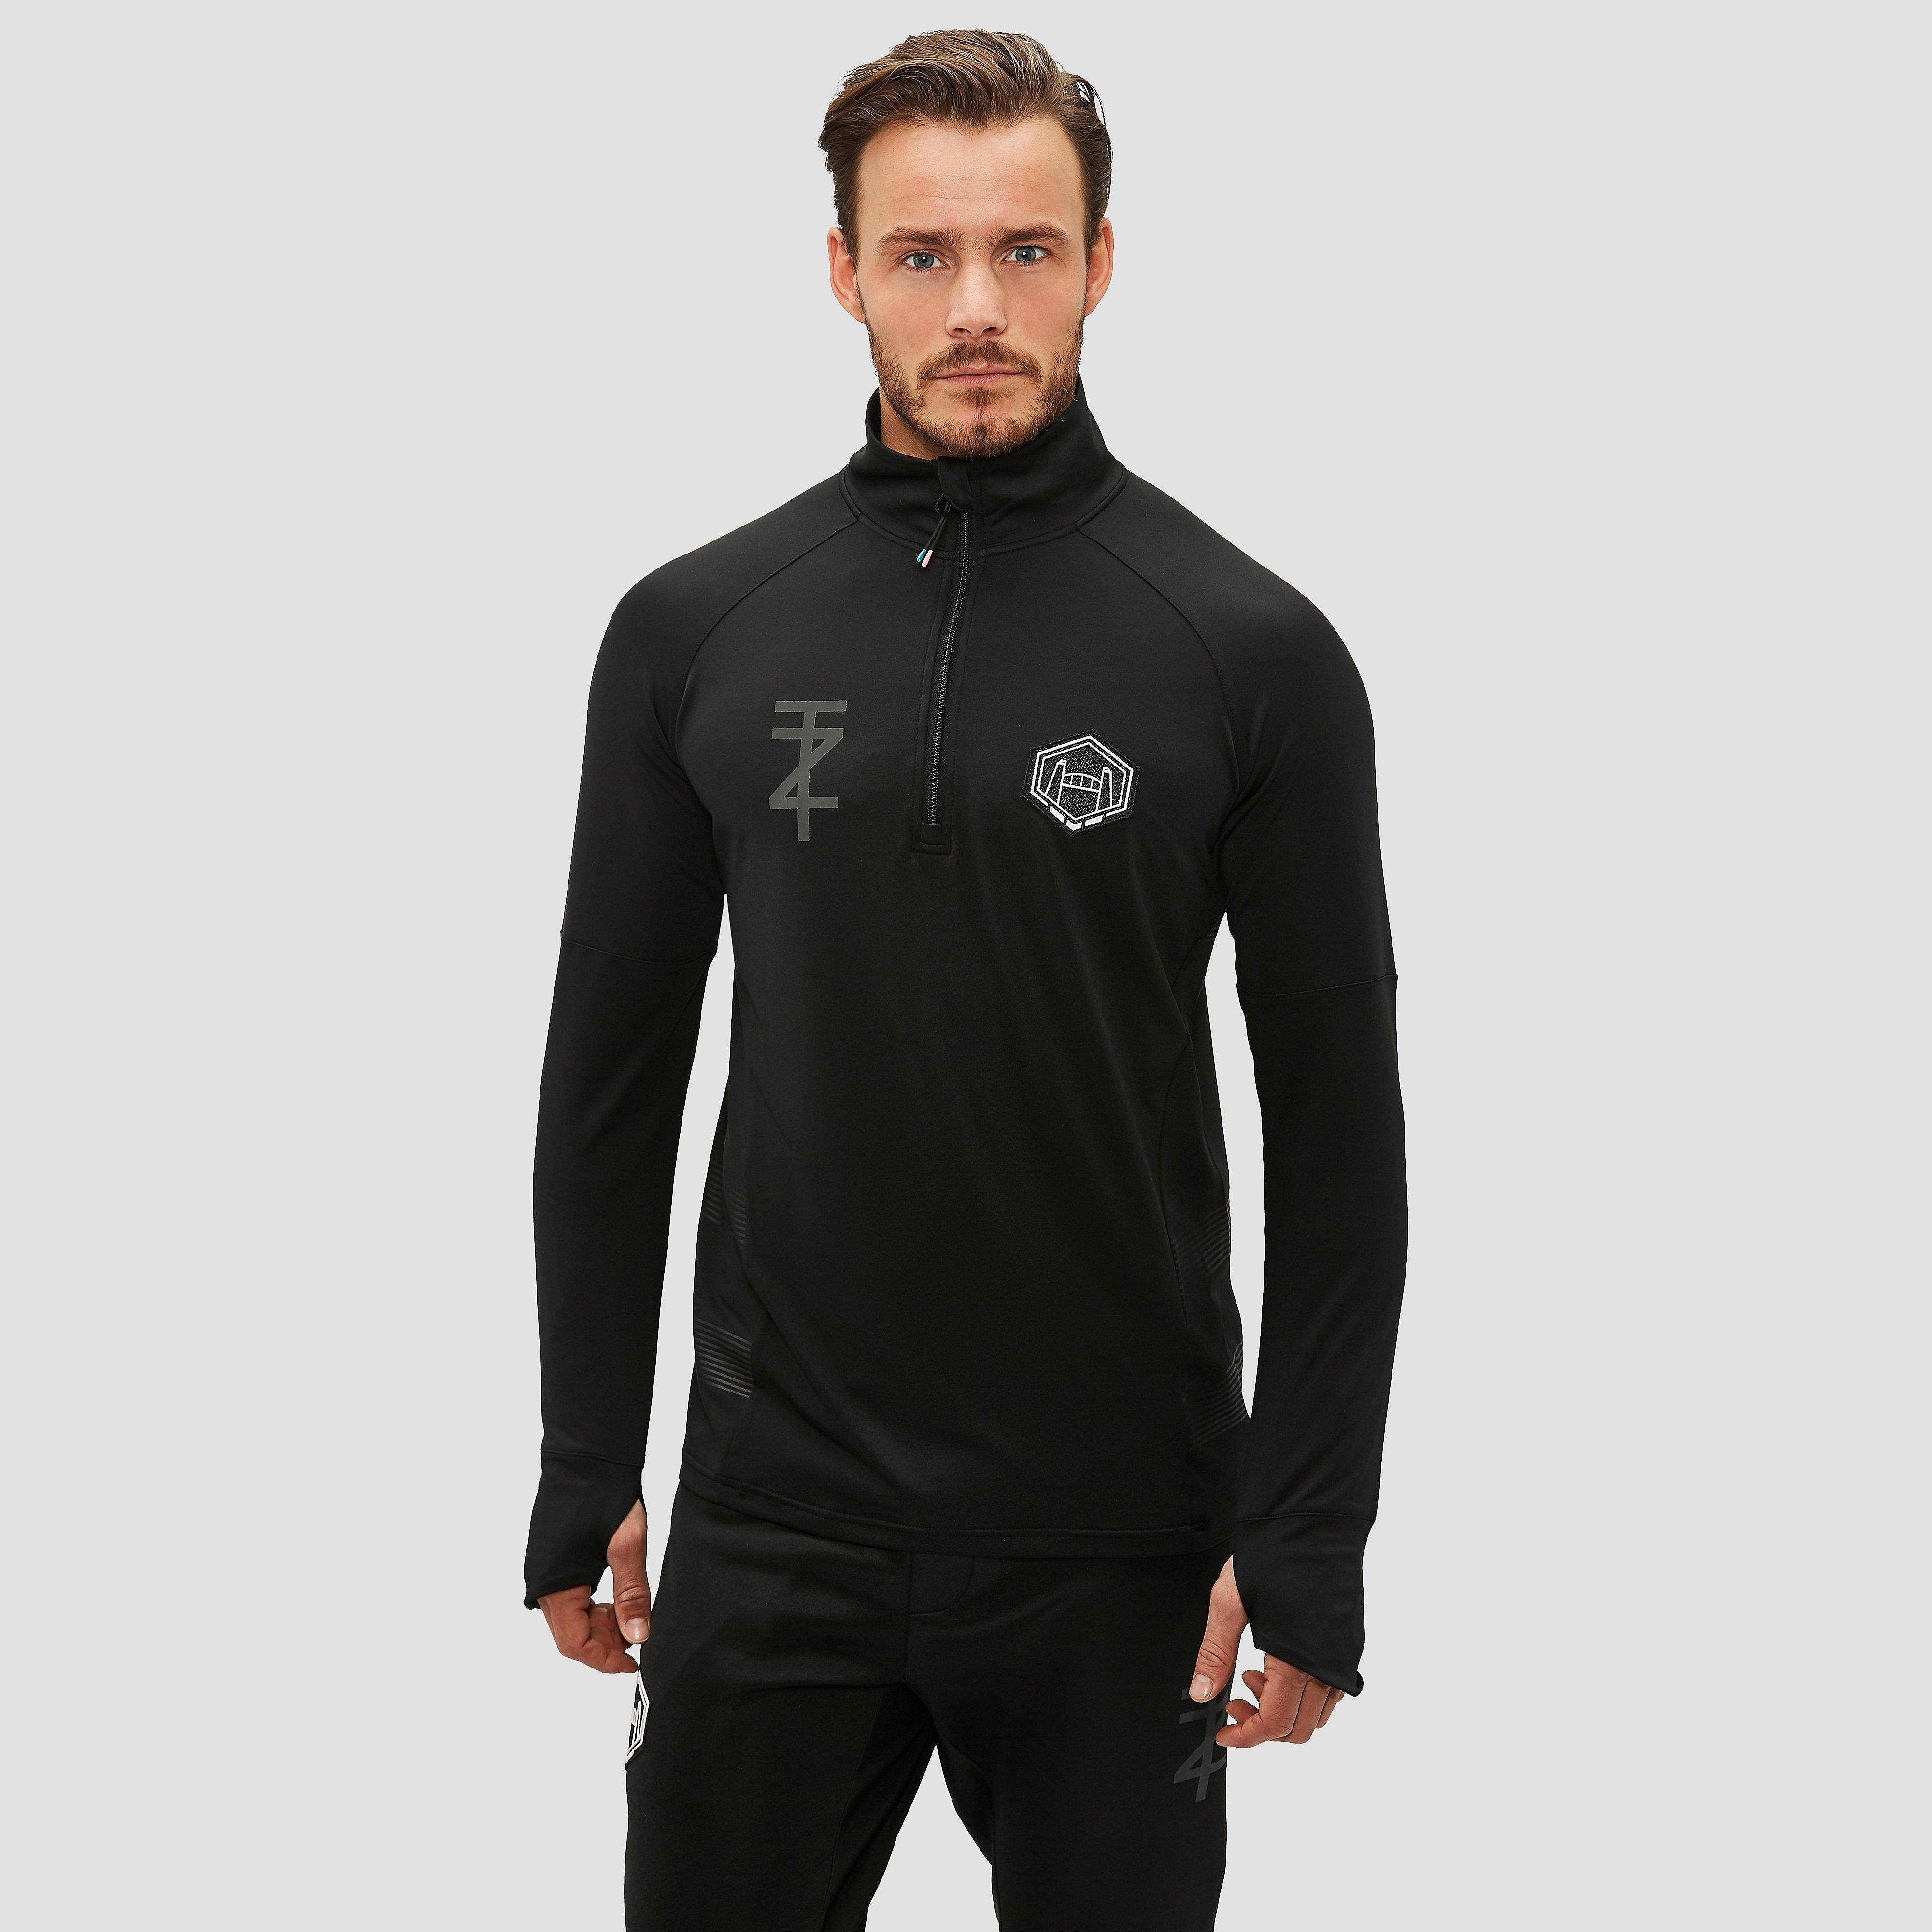 TOUZANI ELASTICO HALF ZIP DRILL TRAININGSTOP ZWART HEREN